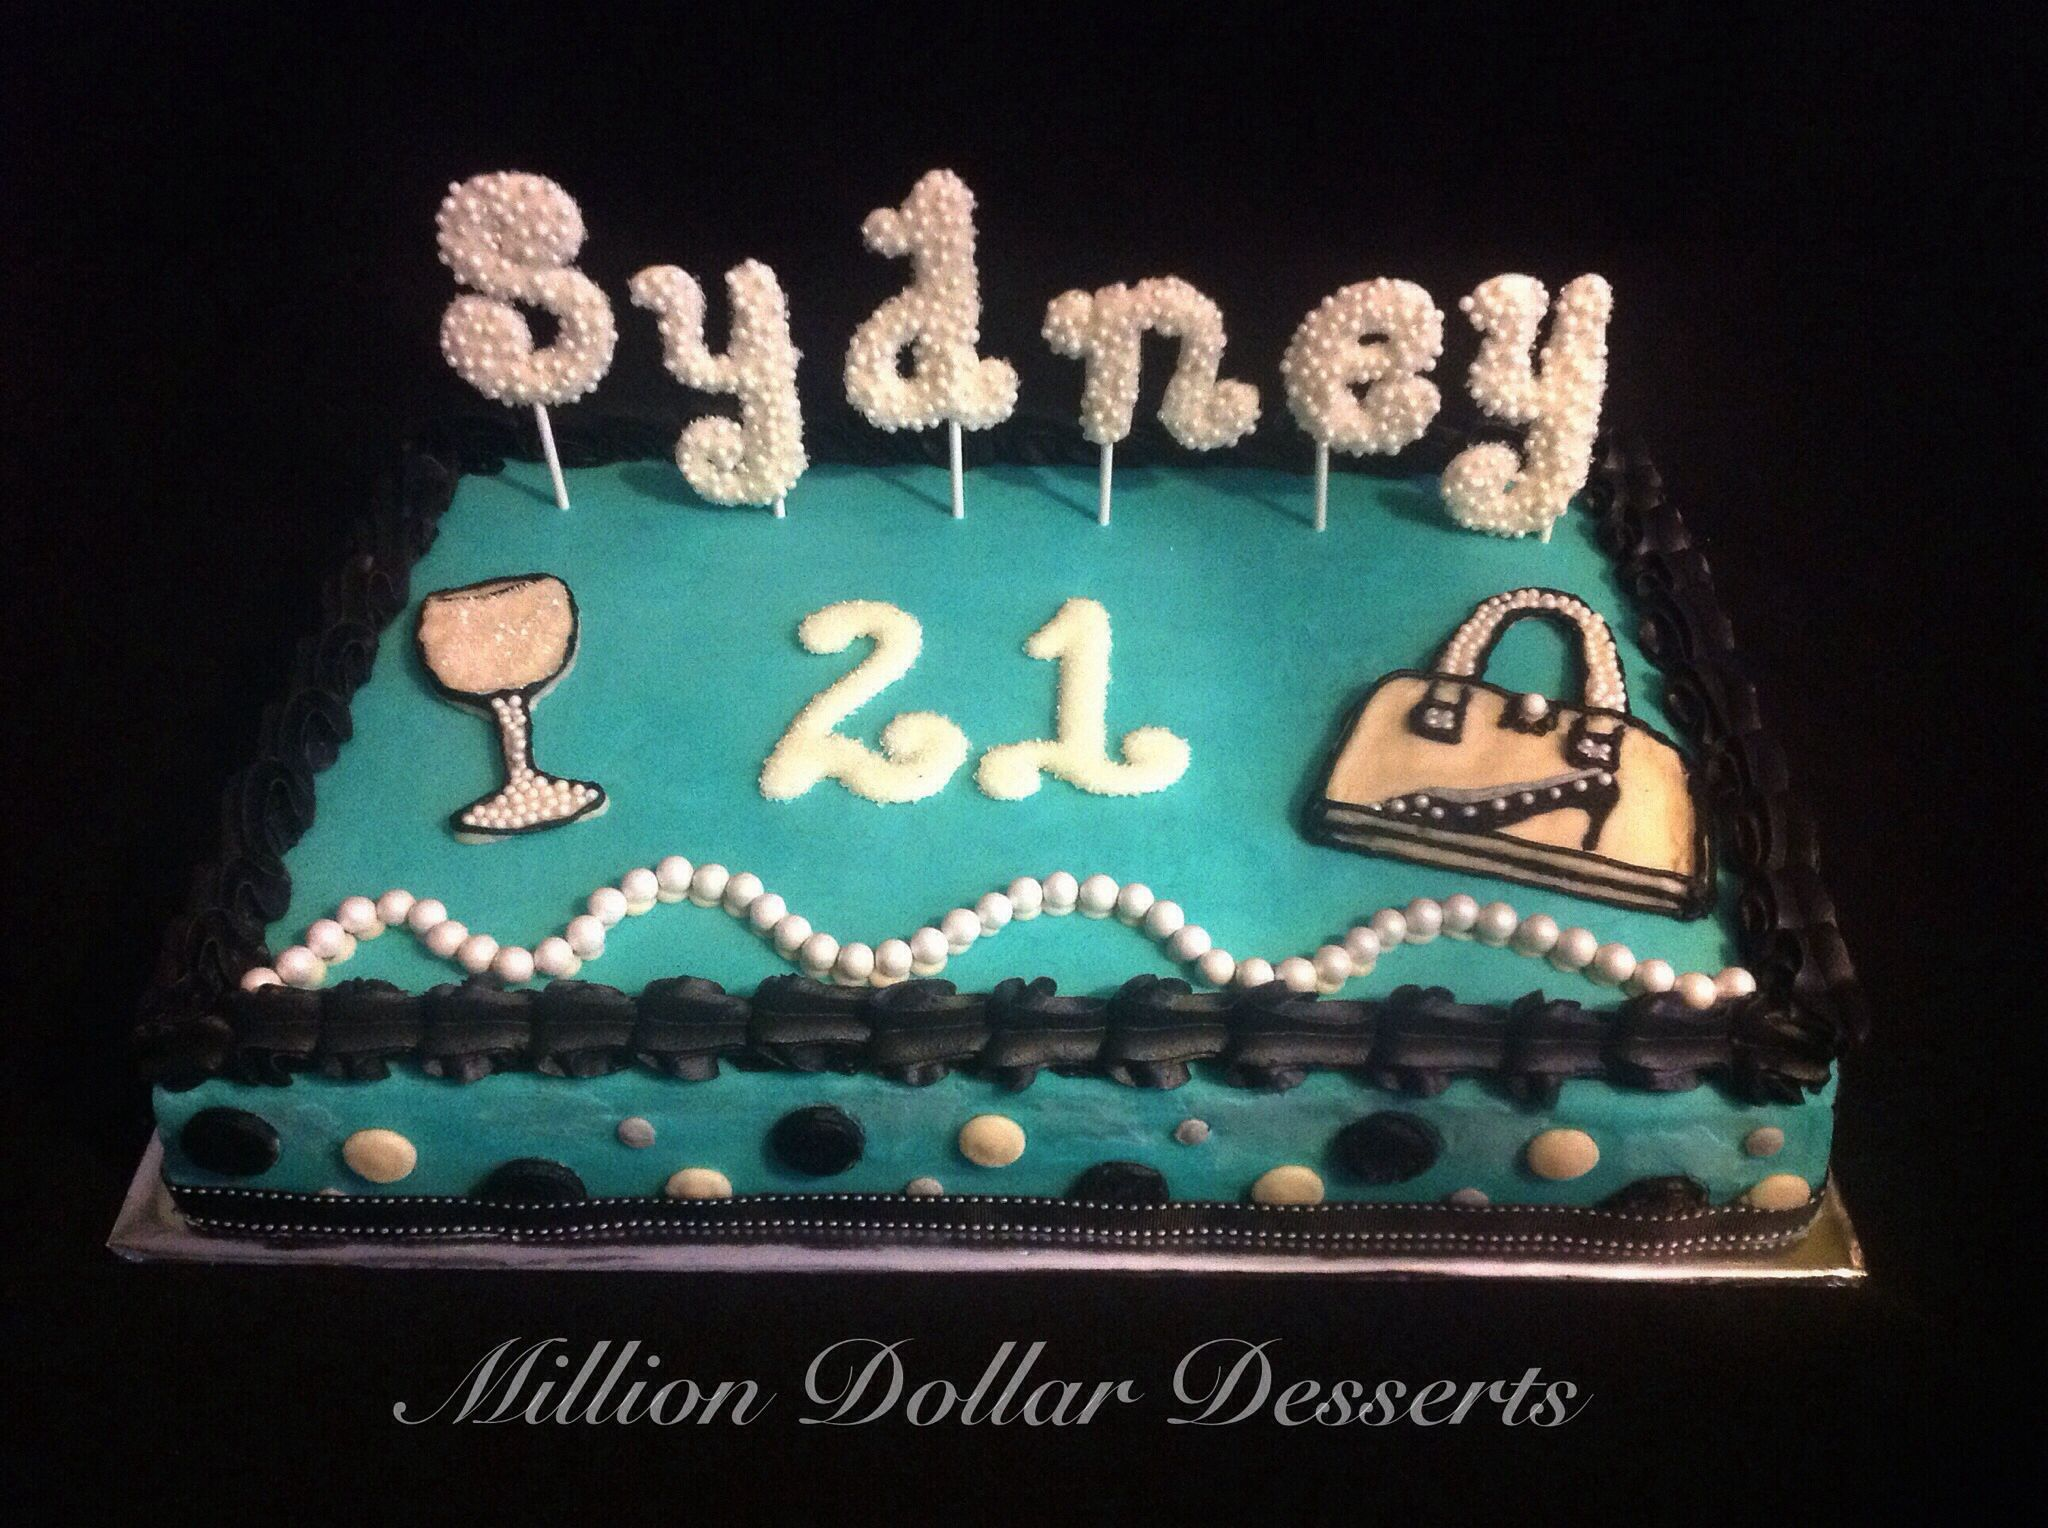 21st Birthday Cake With Wine Glass Purse And Pearls